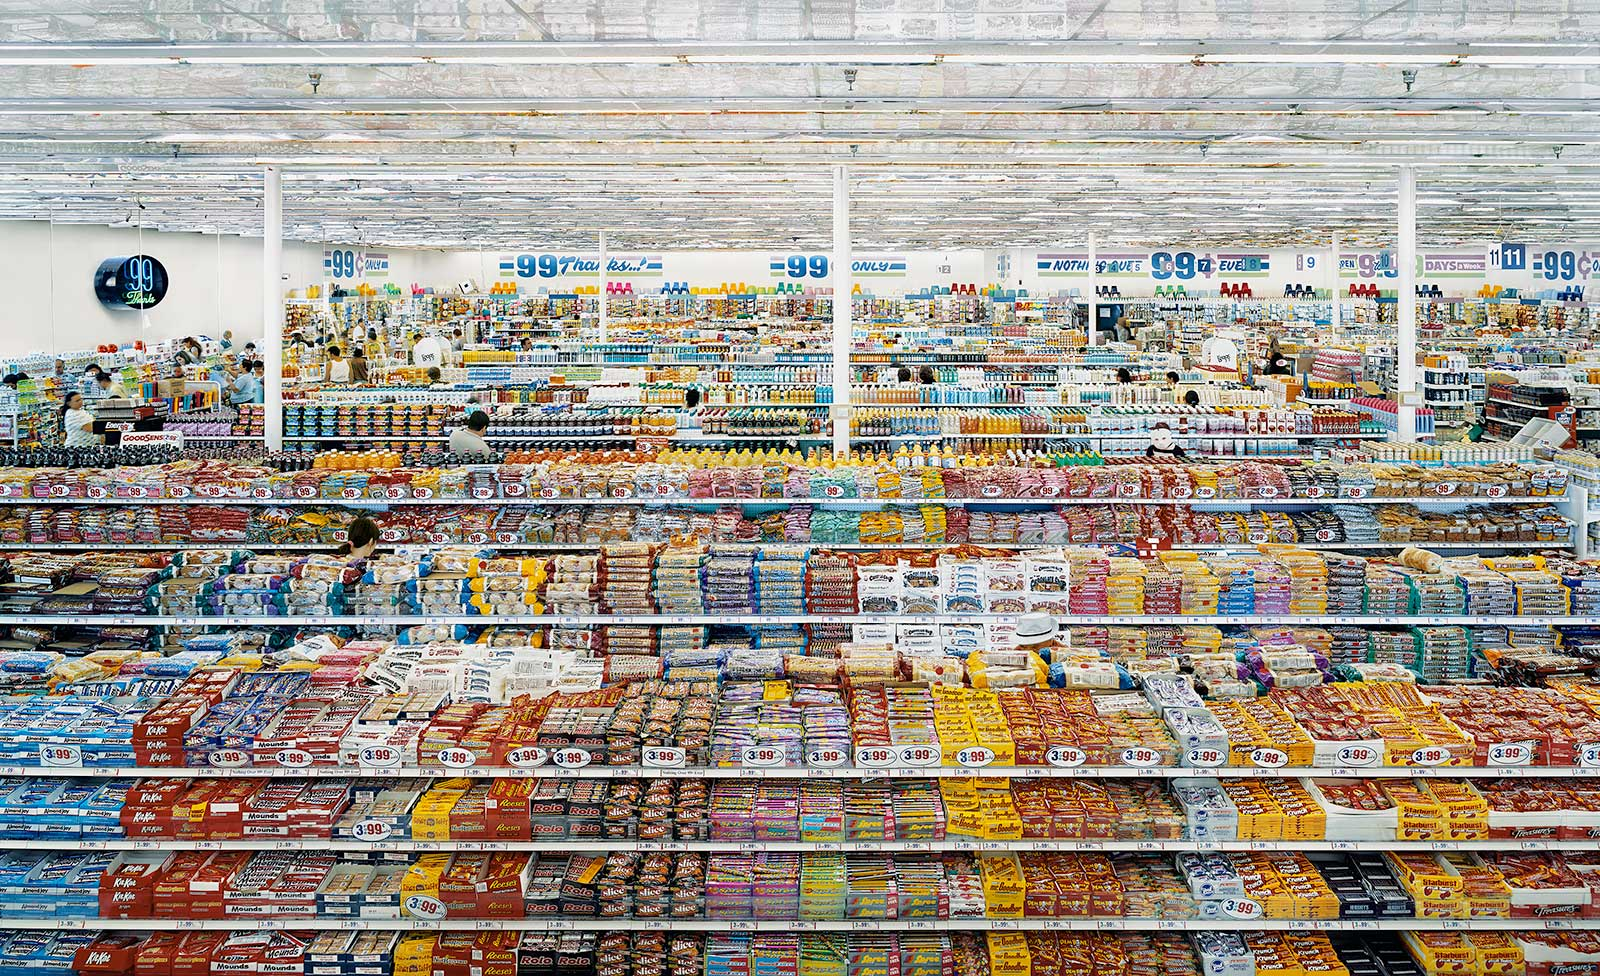 Andreas Gursky, '99 Cent II'